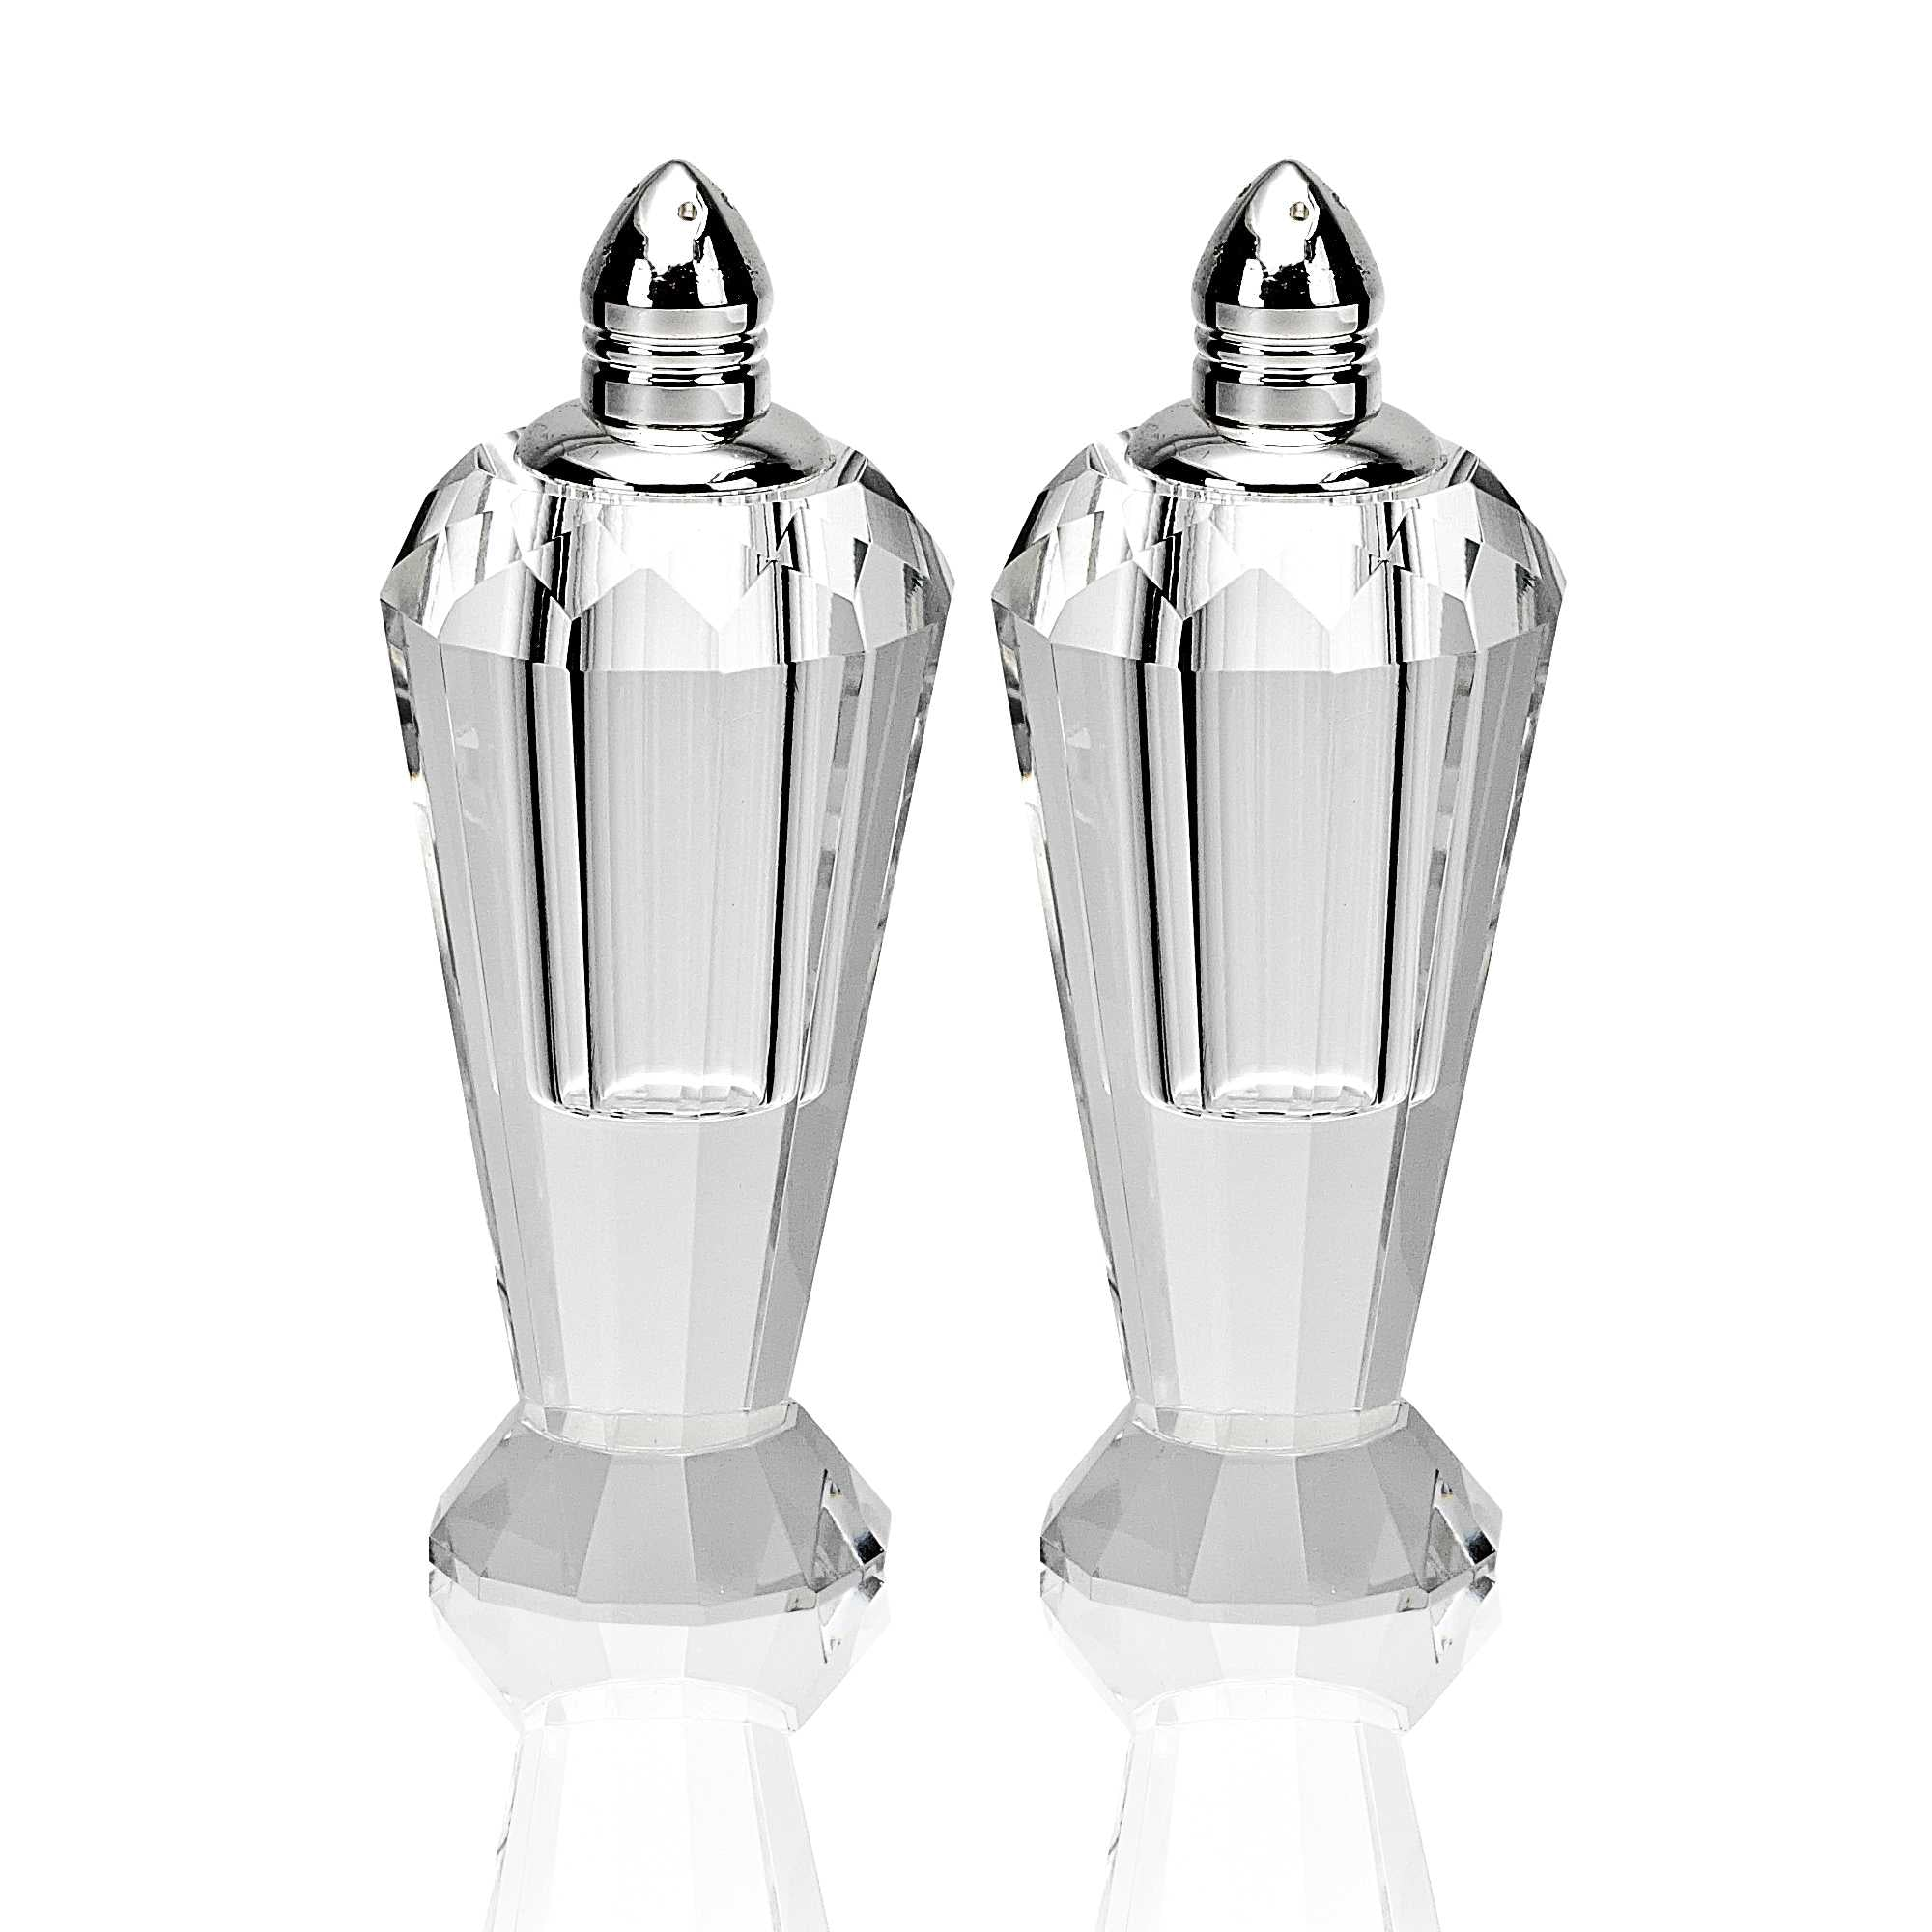 Handcrafted Optical Crystal and Silver Pair of Salt & Pepper Shakers